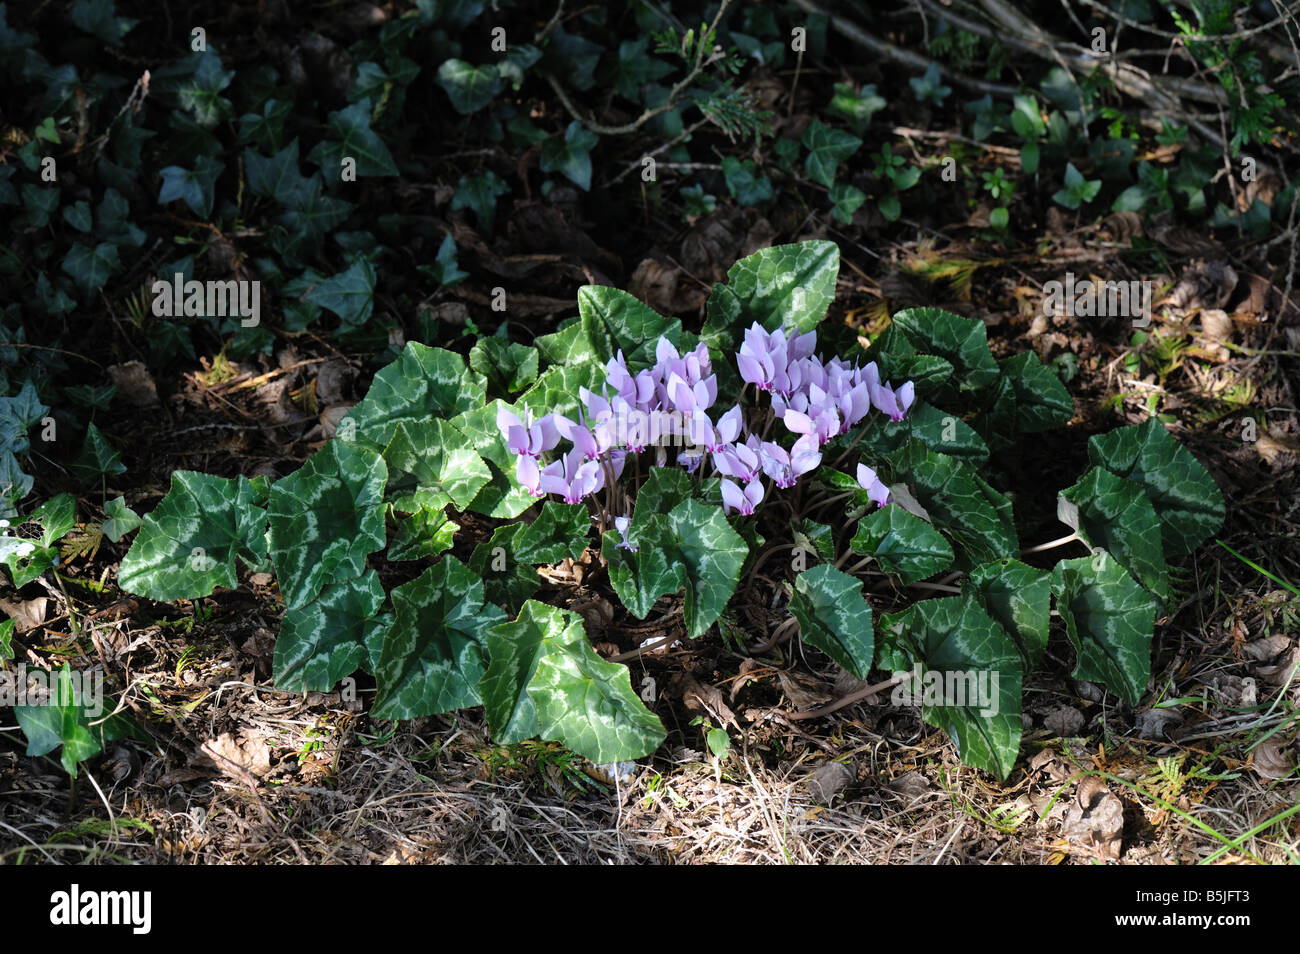 Ivy leaved cyclamen or sowbread Cyclamen hederifolium flowering in heavy shade - Stock Image